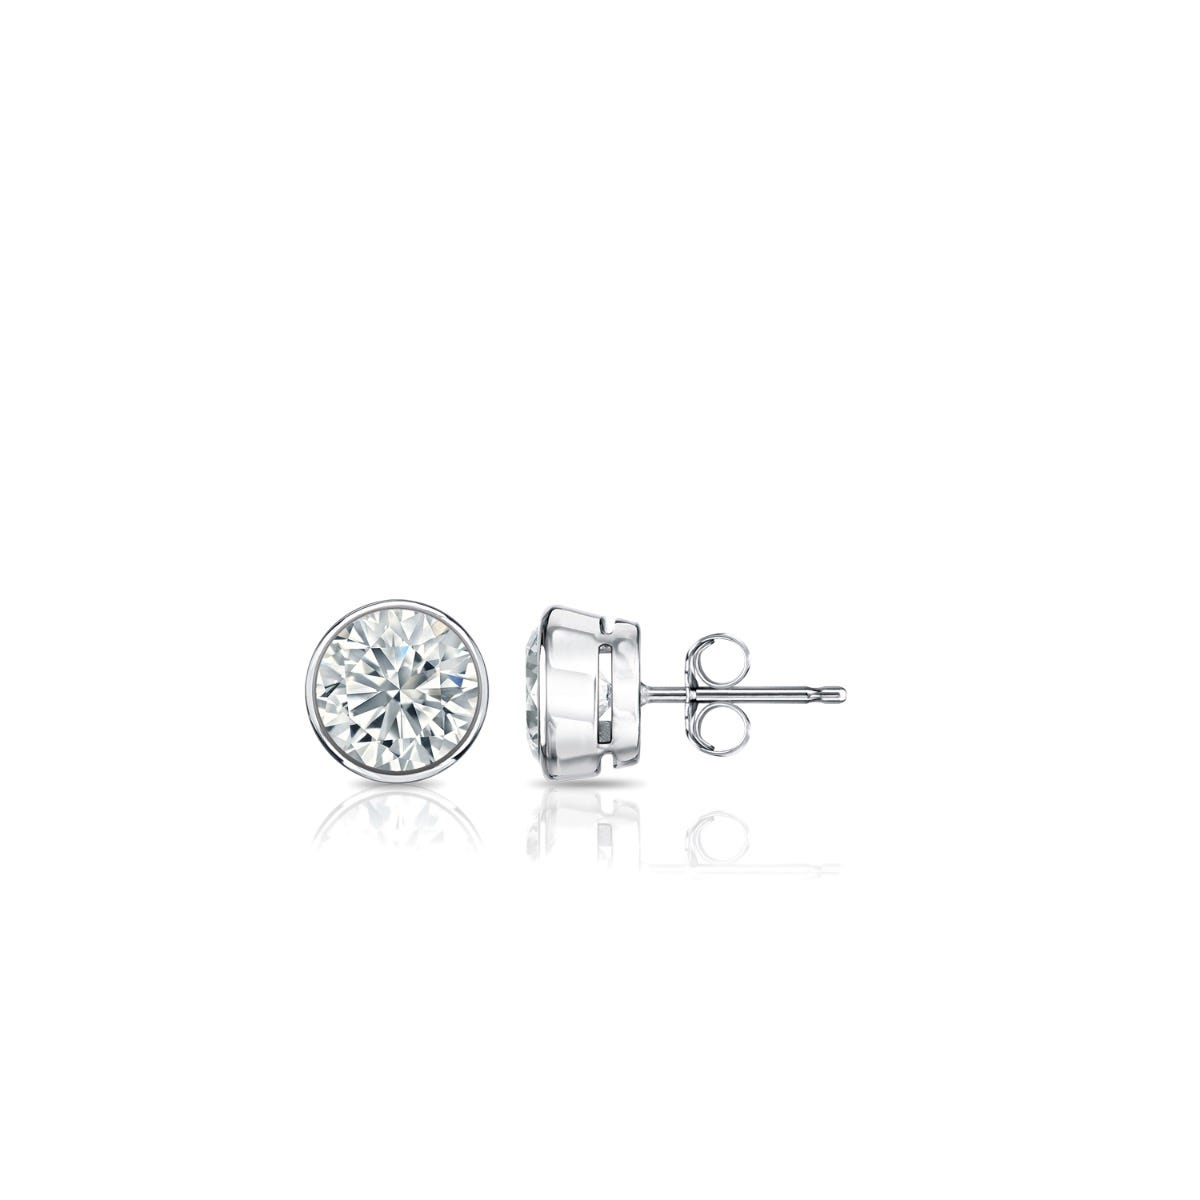 Diamond Round Bezel-Set 1/5ctw. Solitaire Stud (IJ-I1) Earrings in 14K White Gold